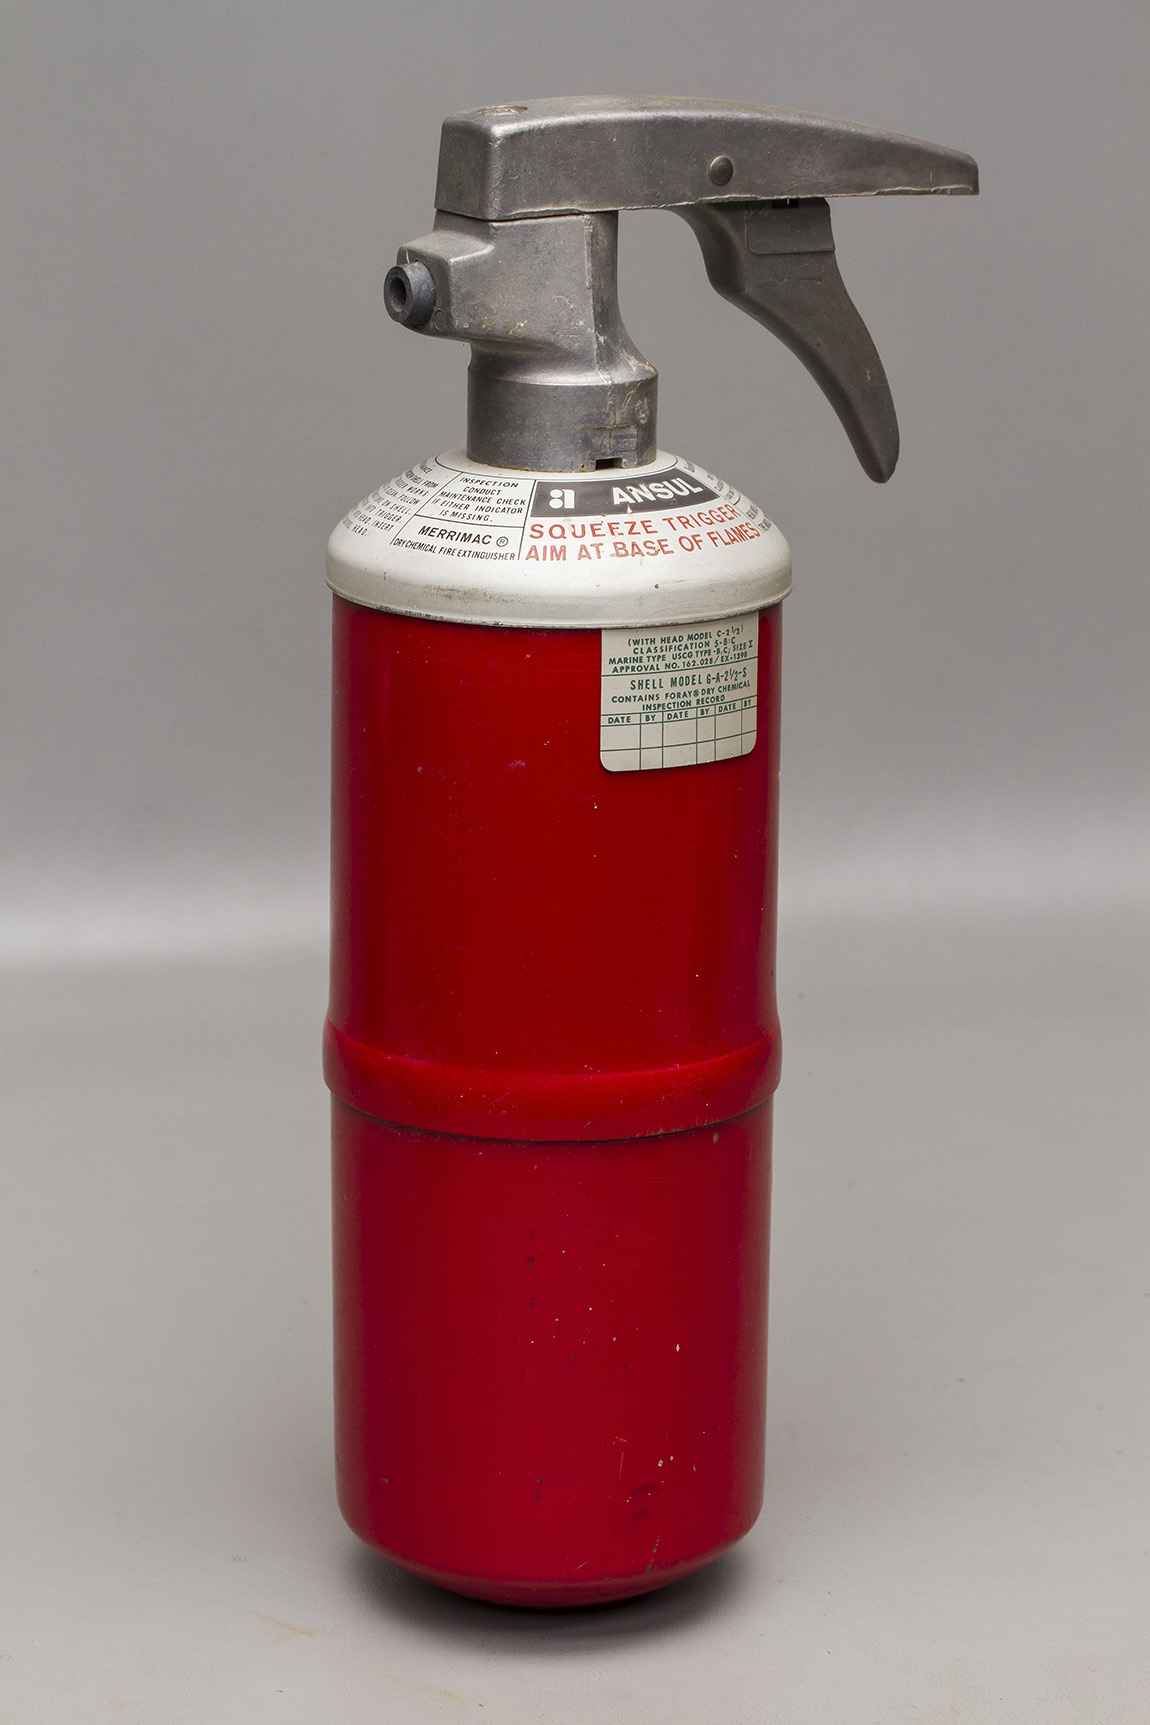 Details about Vintage Ansul Model G-A-2 1/2-S Marine Type Dry Chemical Fire  Extinguisher